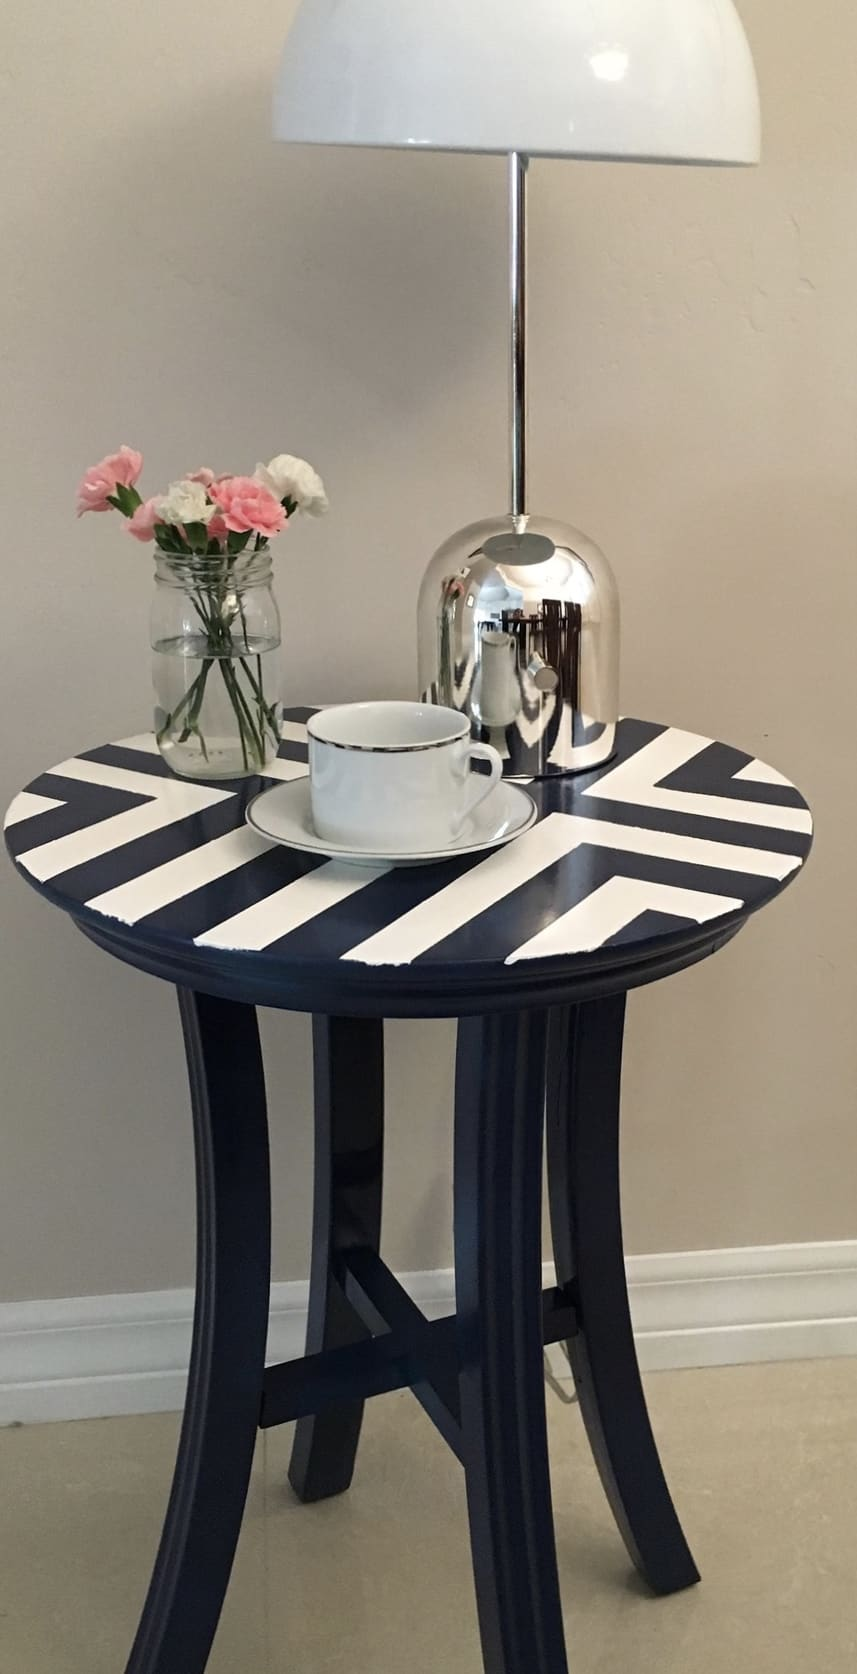 Side Table Side Table Makeover. Easy DIY. #spraypaint #sidetable #furniture #diy #homeimprovement #makeover #painterstape #table